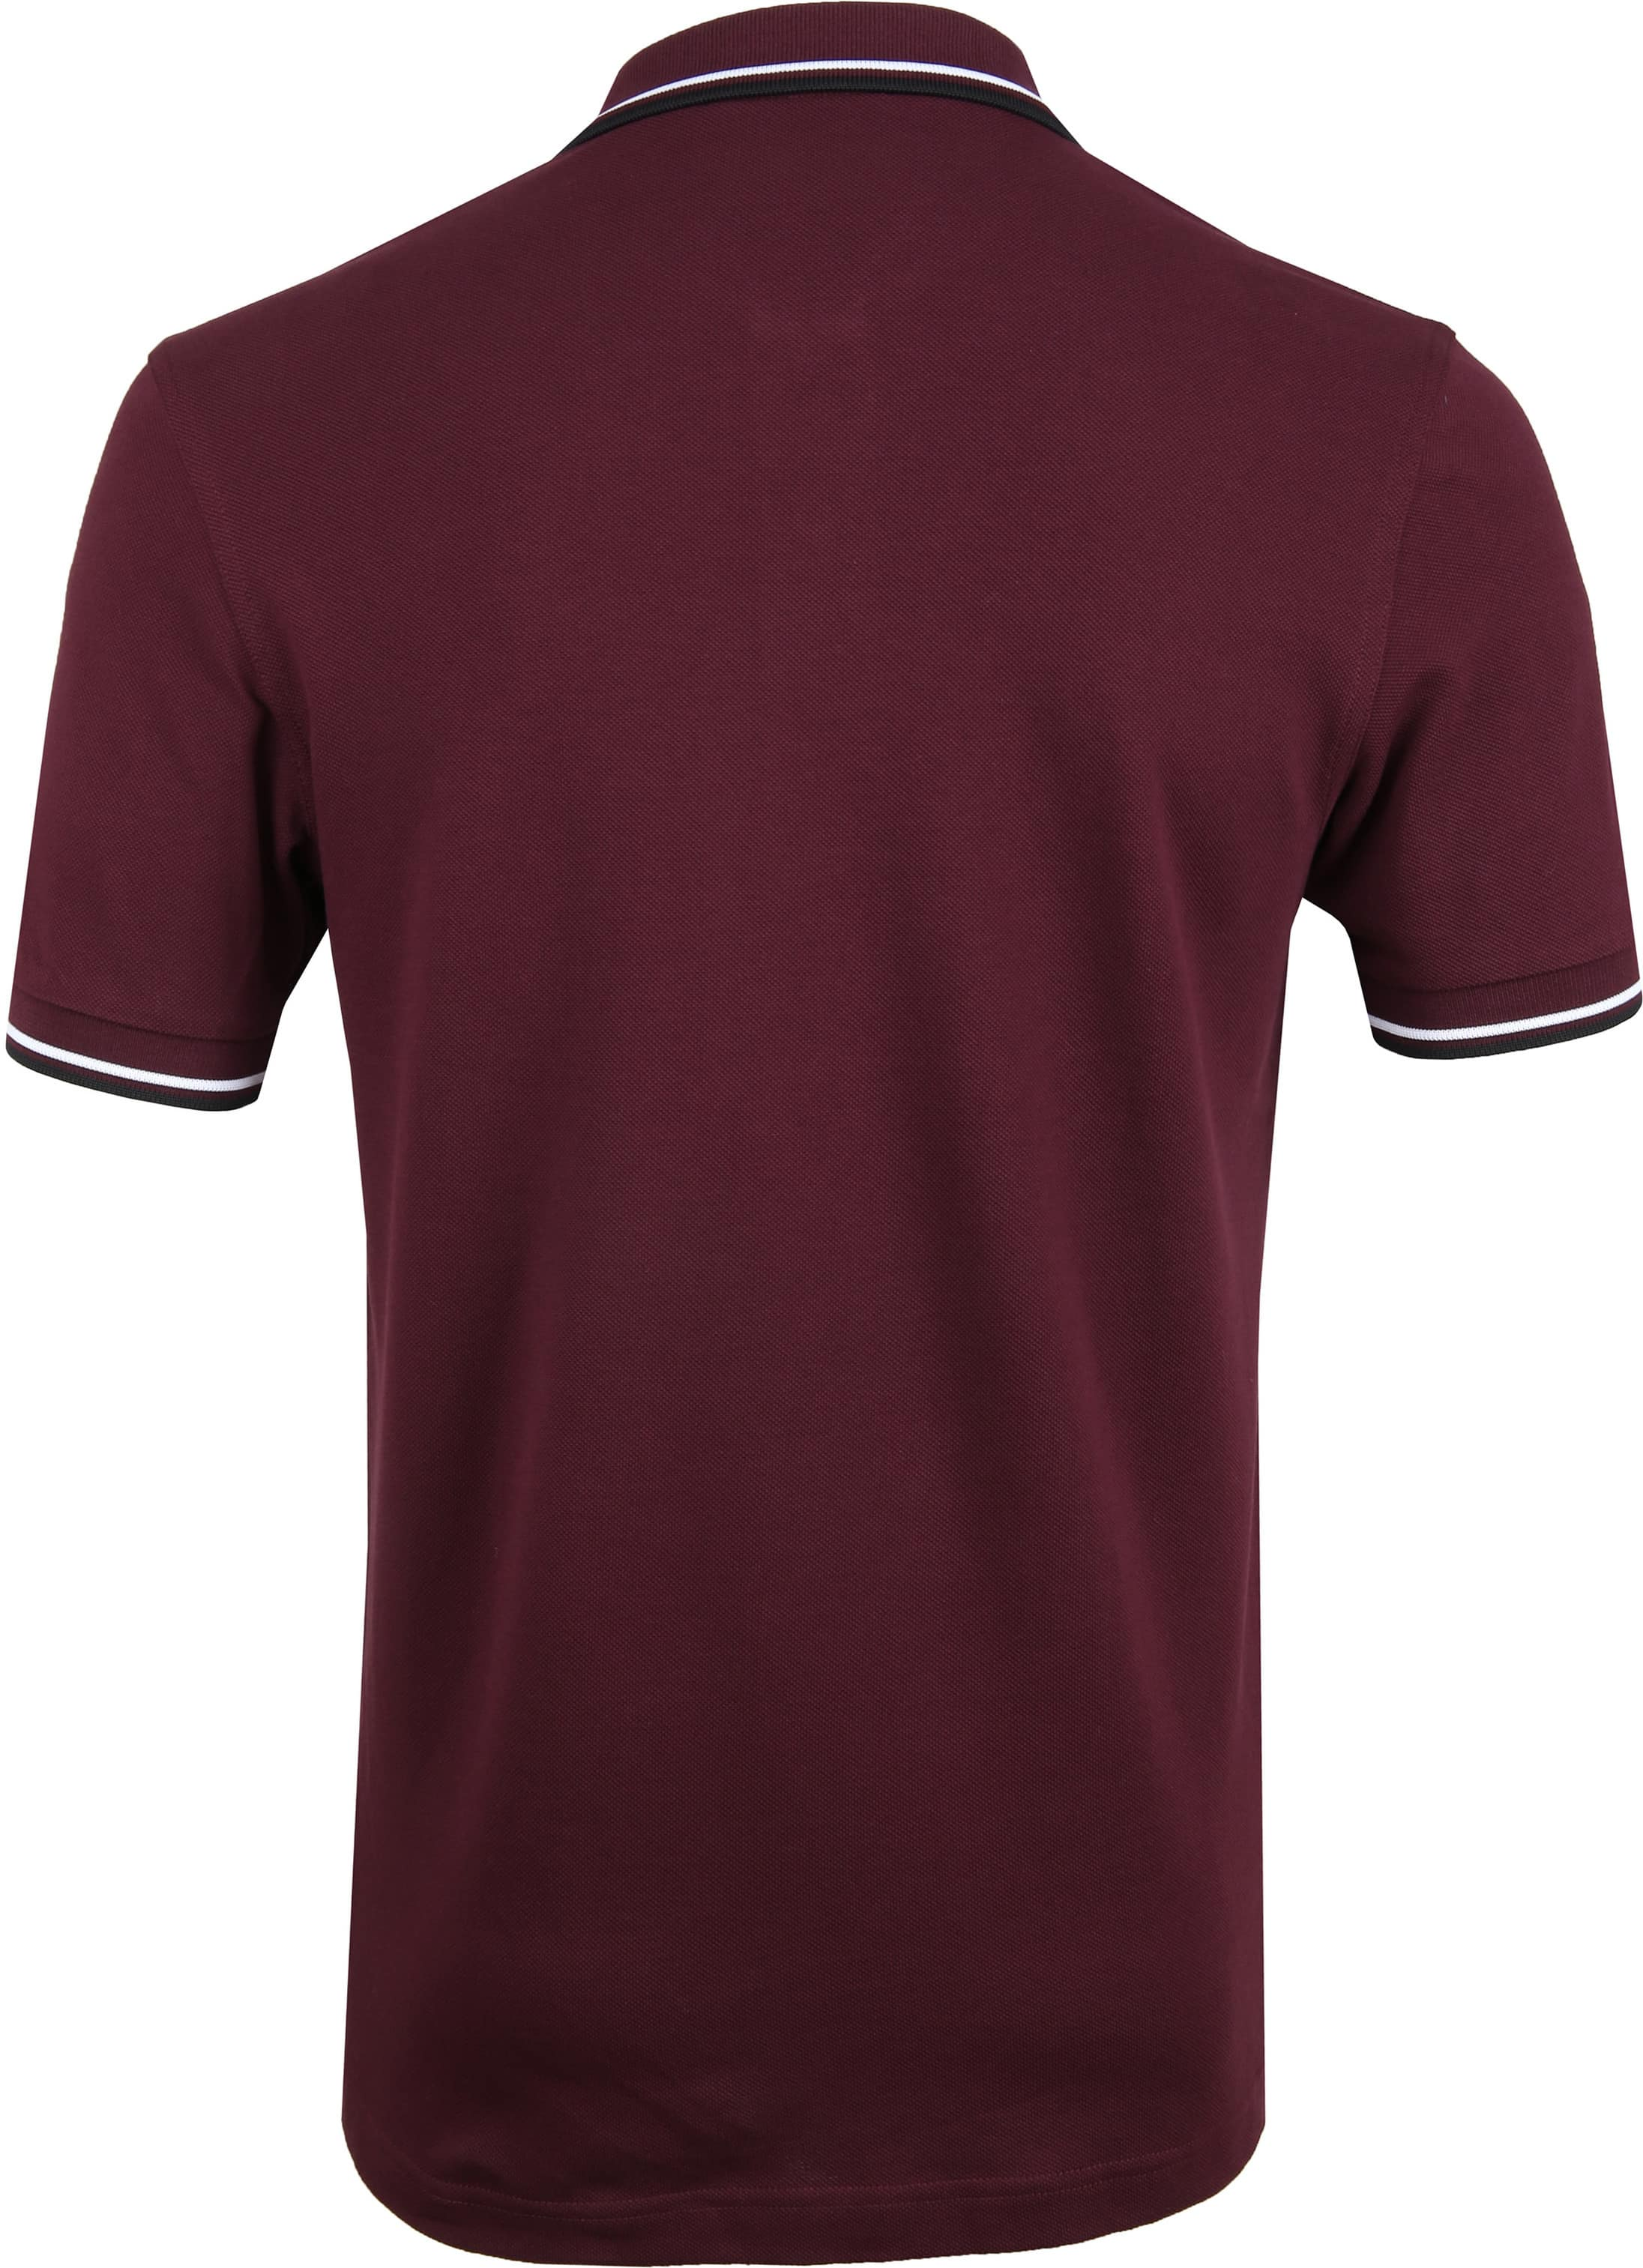 Fred Perry Poloshirt Bordeaux I74 photo 3